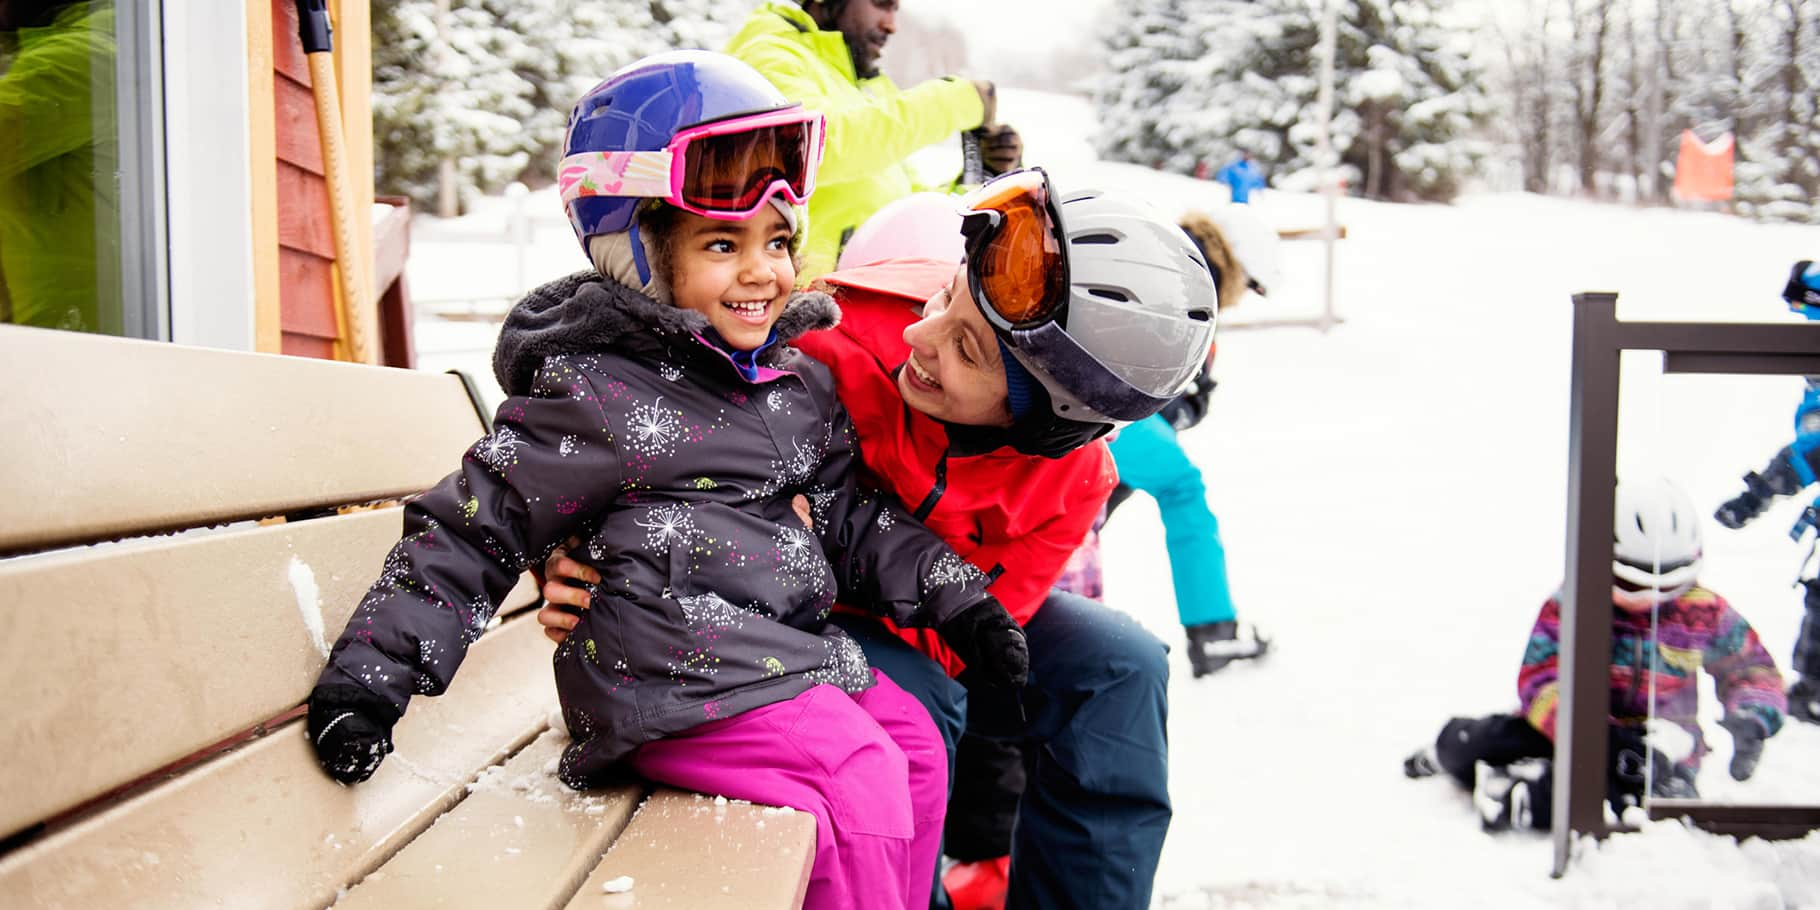 A mother helping her young daughter approach a ski lift.